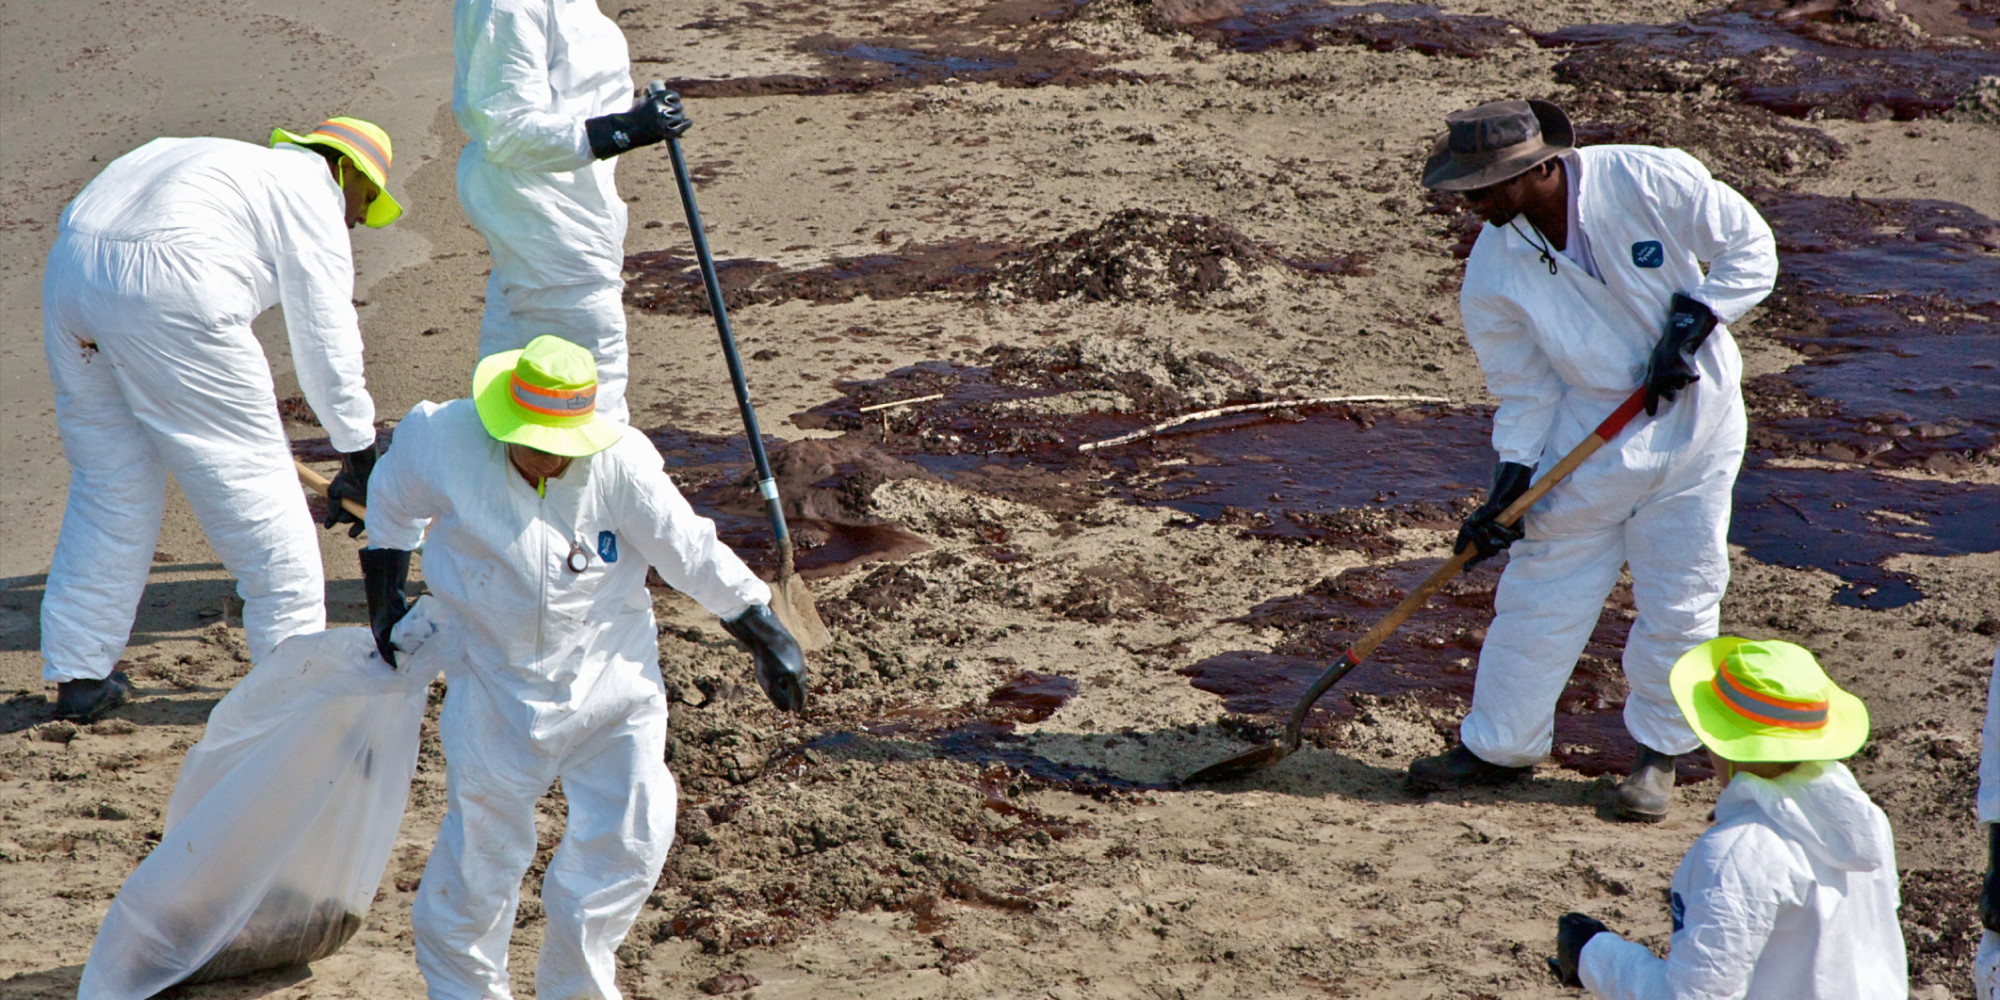 ethical concerns of bp spill Related posts watch videos on the bp oil spill & blue jean waste pollution whether you agree or disagree with the company or individual's ethical decision.